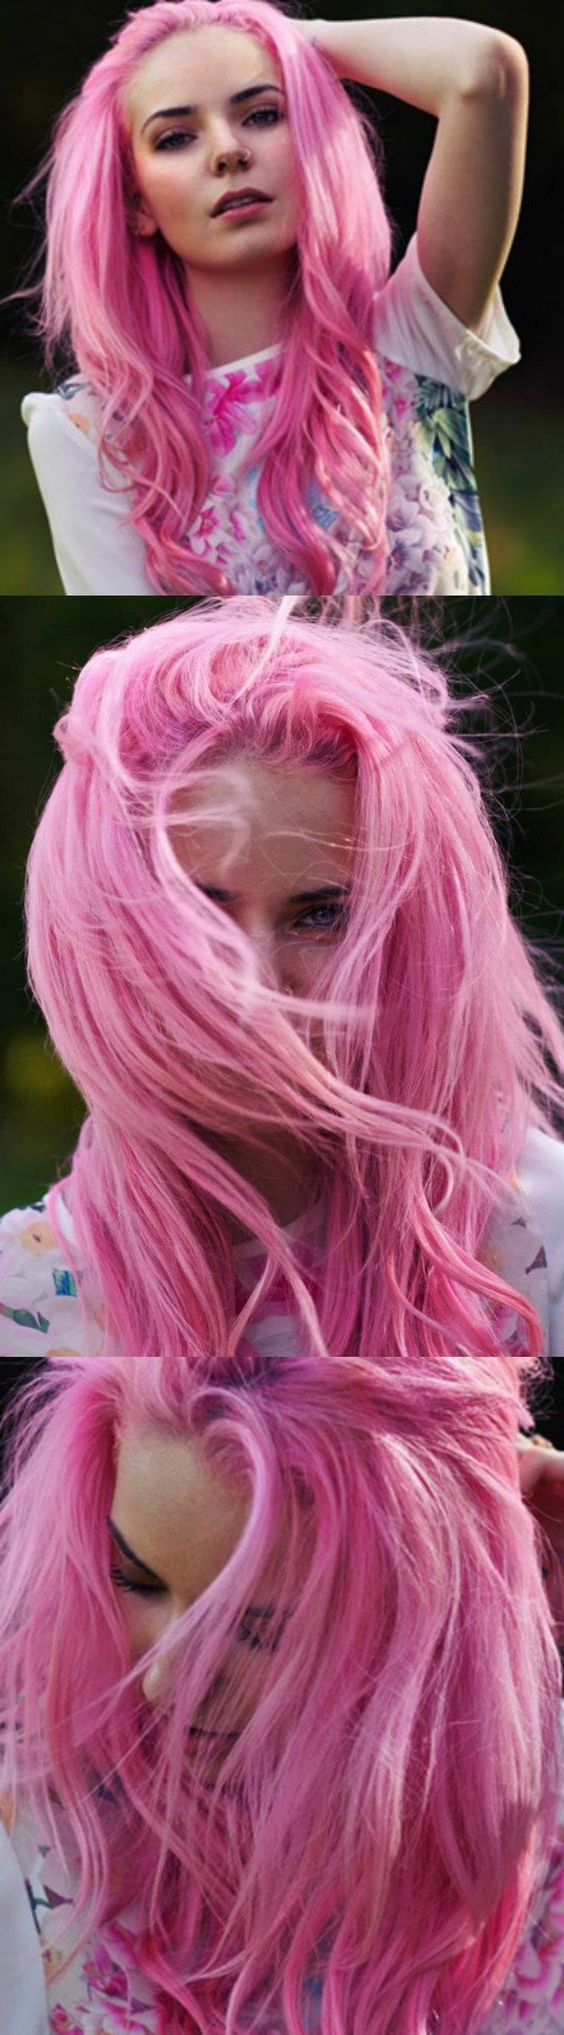 Latest Hot Pink Highlights On Gray Curls Hairstyles For Bright Pink Hair Dye (with Images) (View 2 of 20)